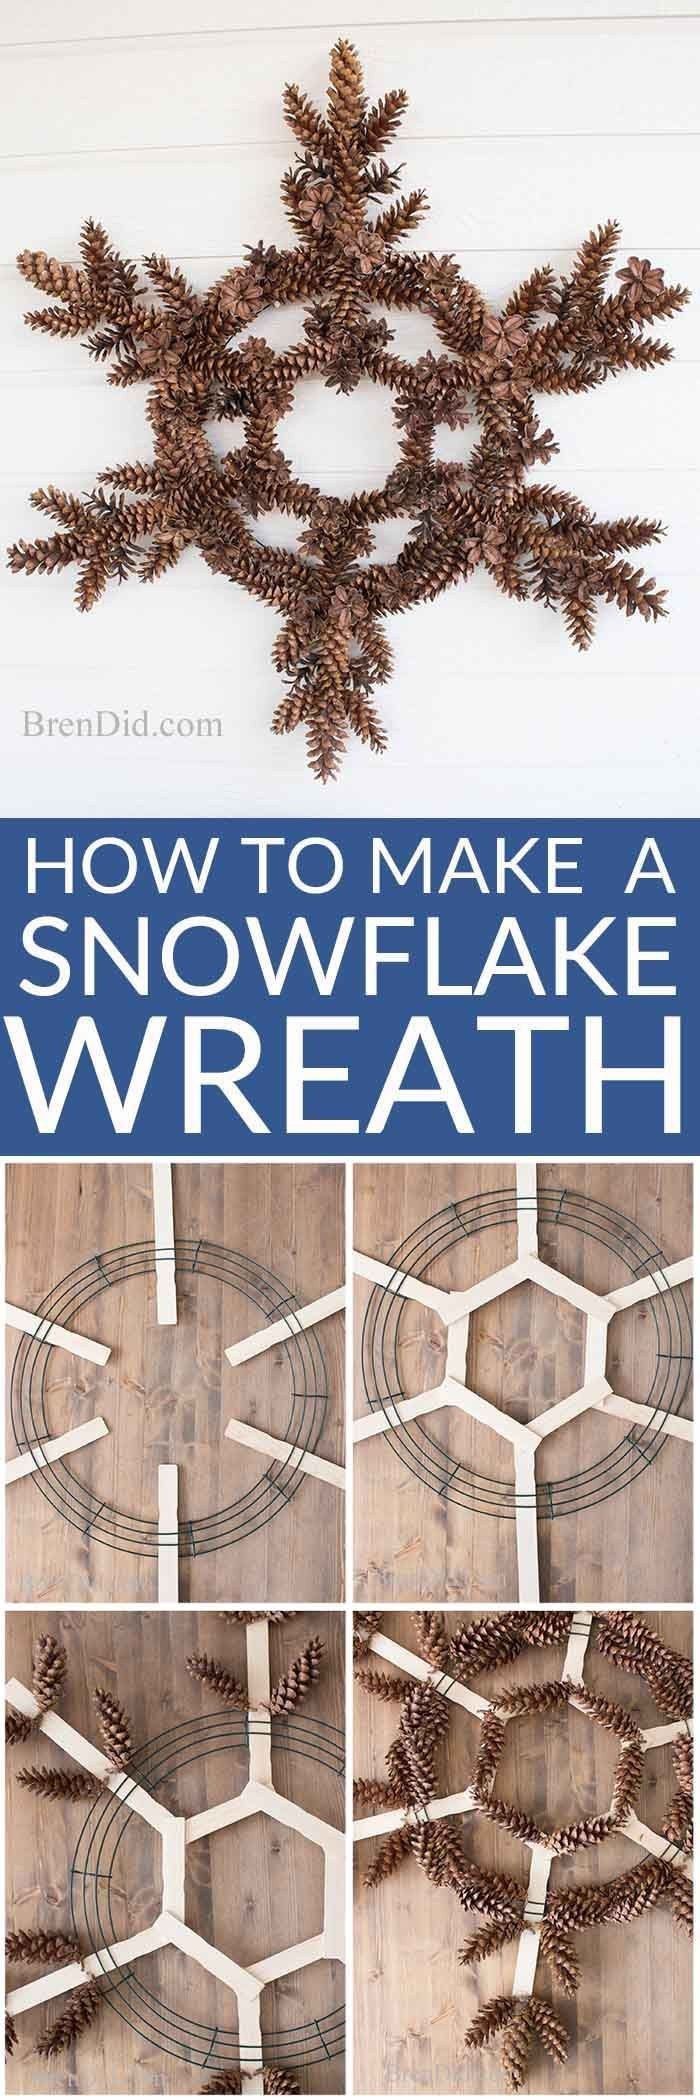 This simple pinecone snowflake wreath is the perfect snowy season decoration! Learn how to make this easy pine cone wreath!. #pinecone #wreath #snowflake #tutorial via @brendidblog